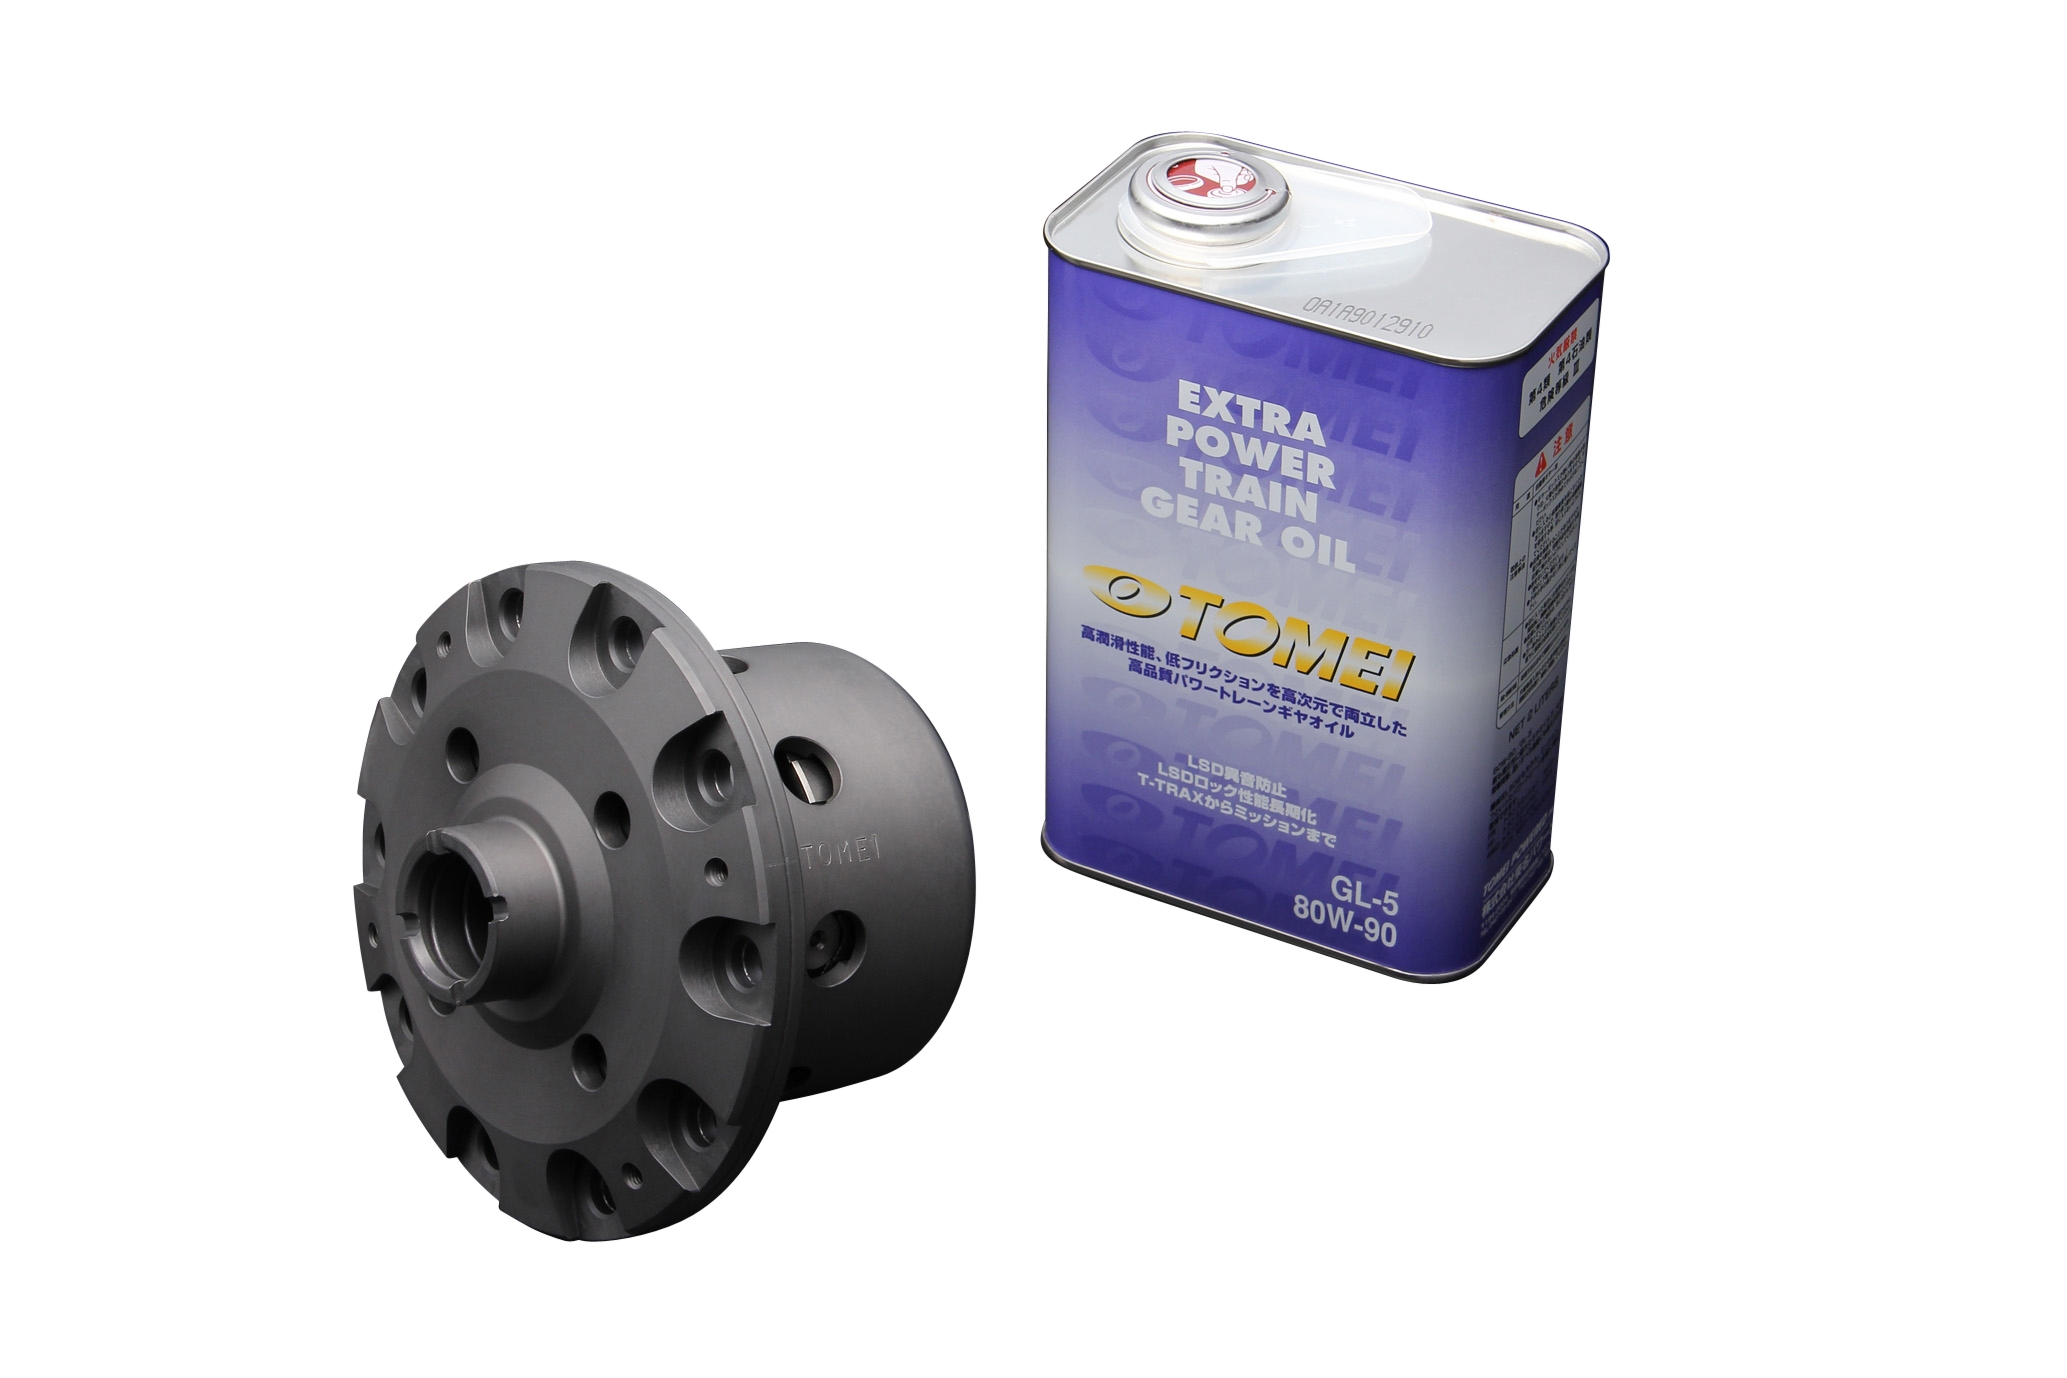 Tomei KA1 1.5-Way LSD Kit Technical Trax Advance For Hyundai Genesis